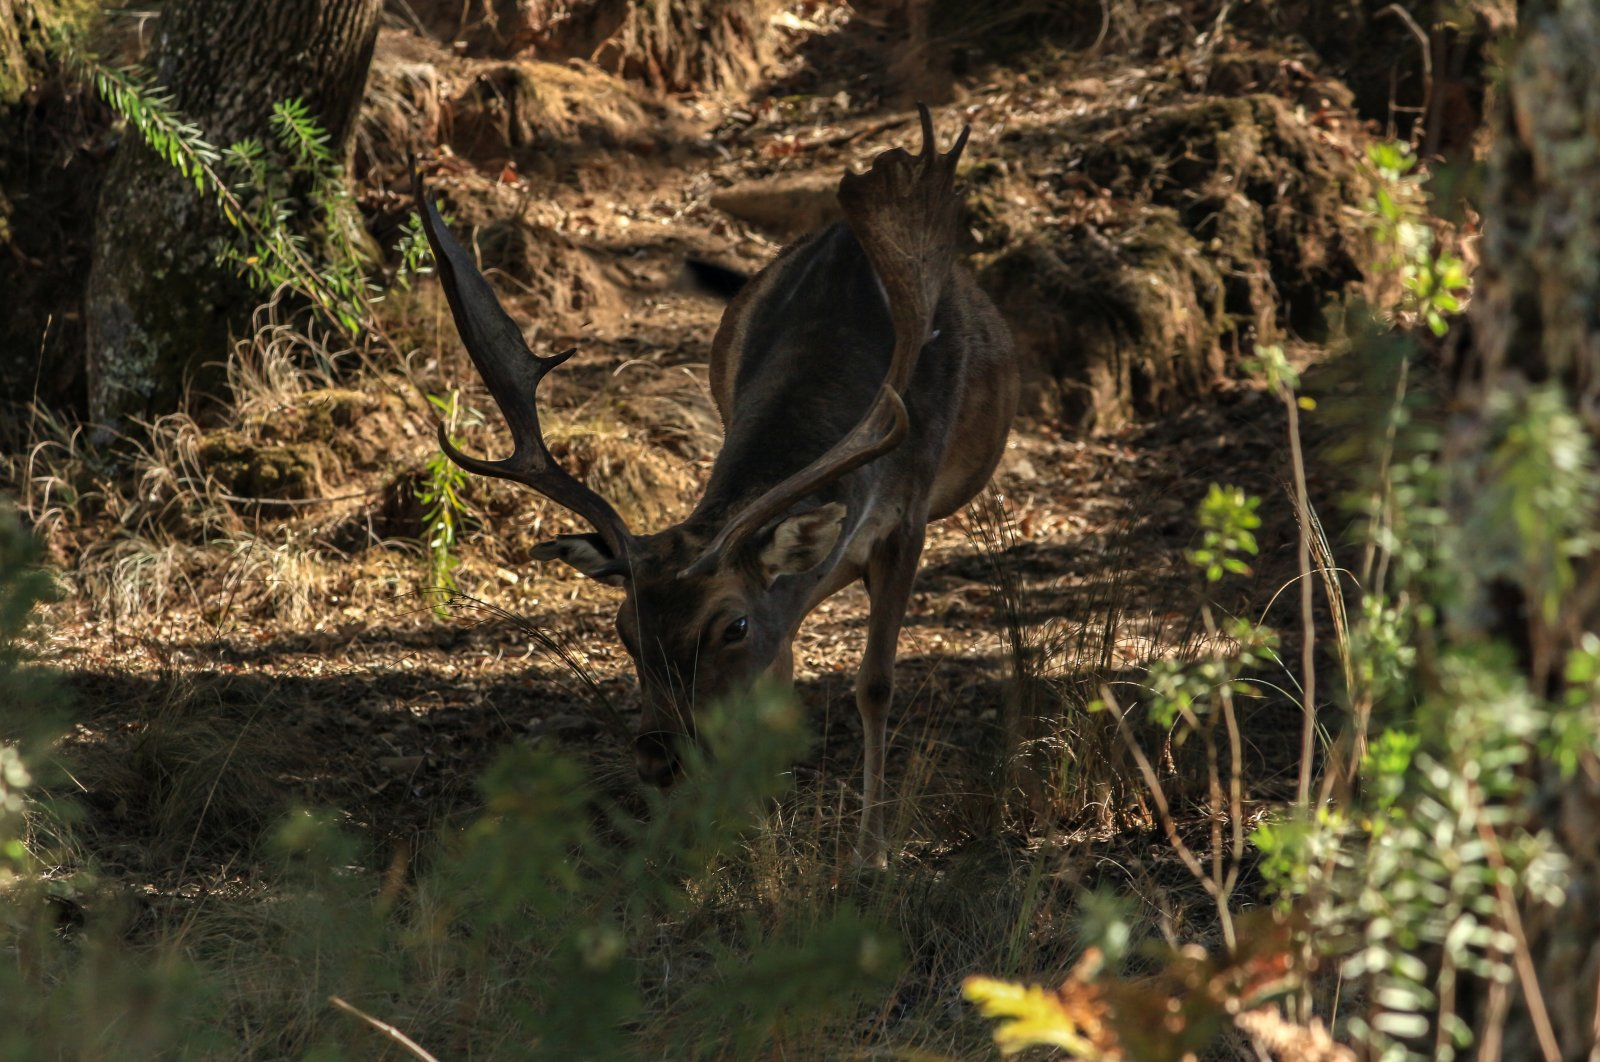 A deer in the Mafra gorge, Lisbon, Portugal. (Shutterstock Photo)